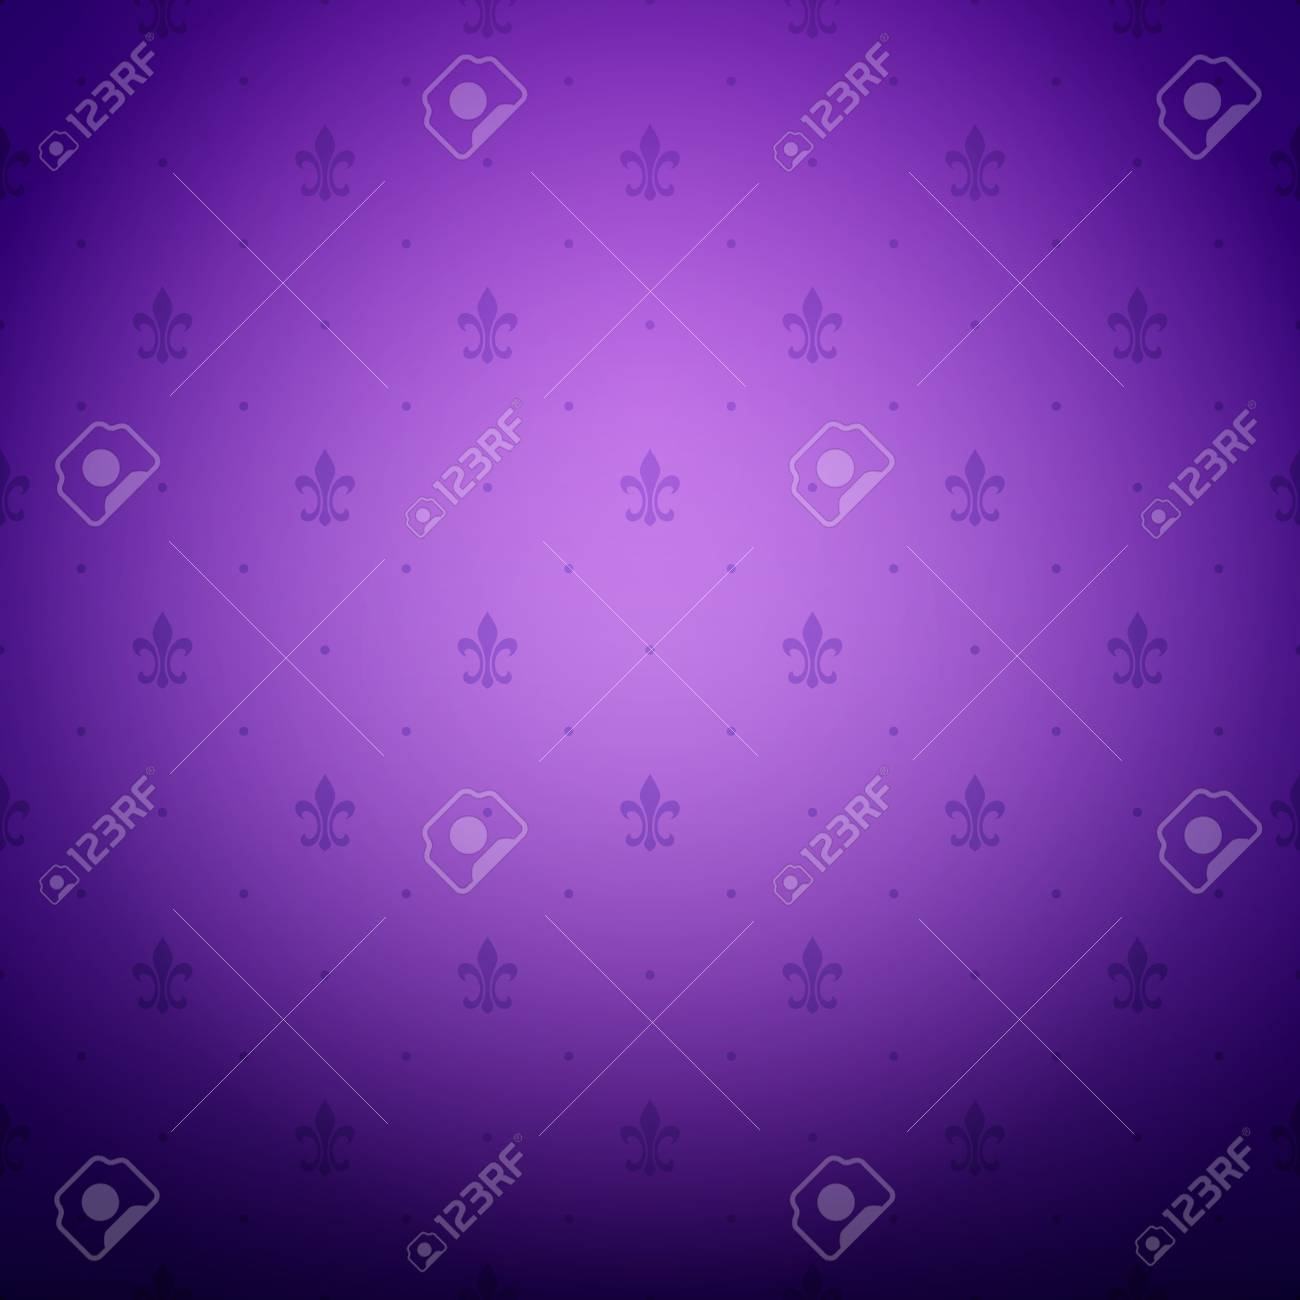 Vintage Ornament Purple Background Wallpaper Ready For Your